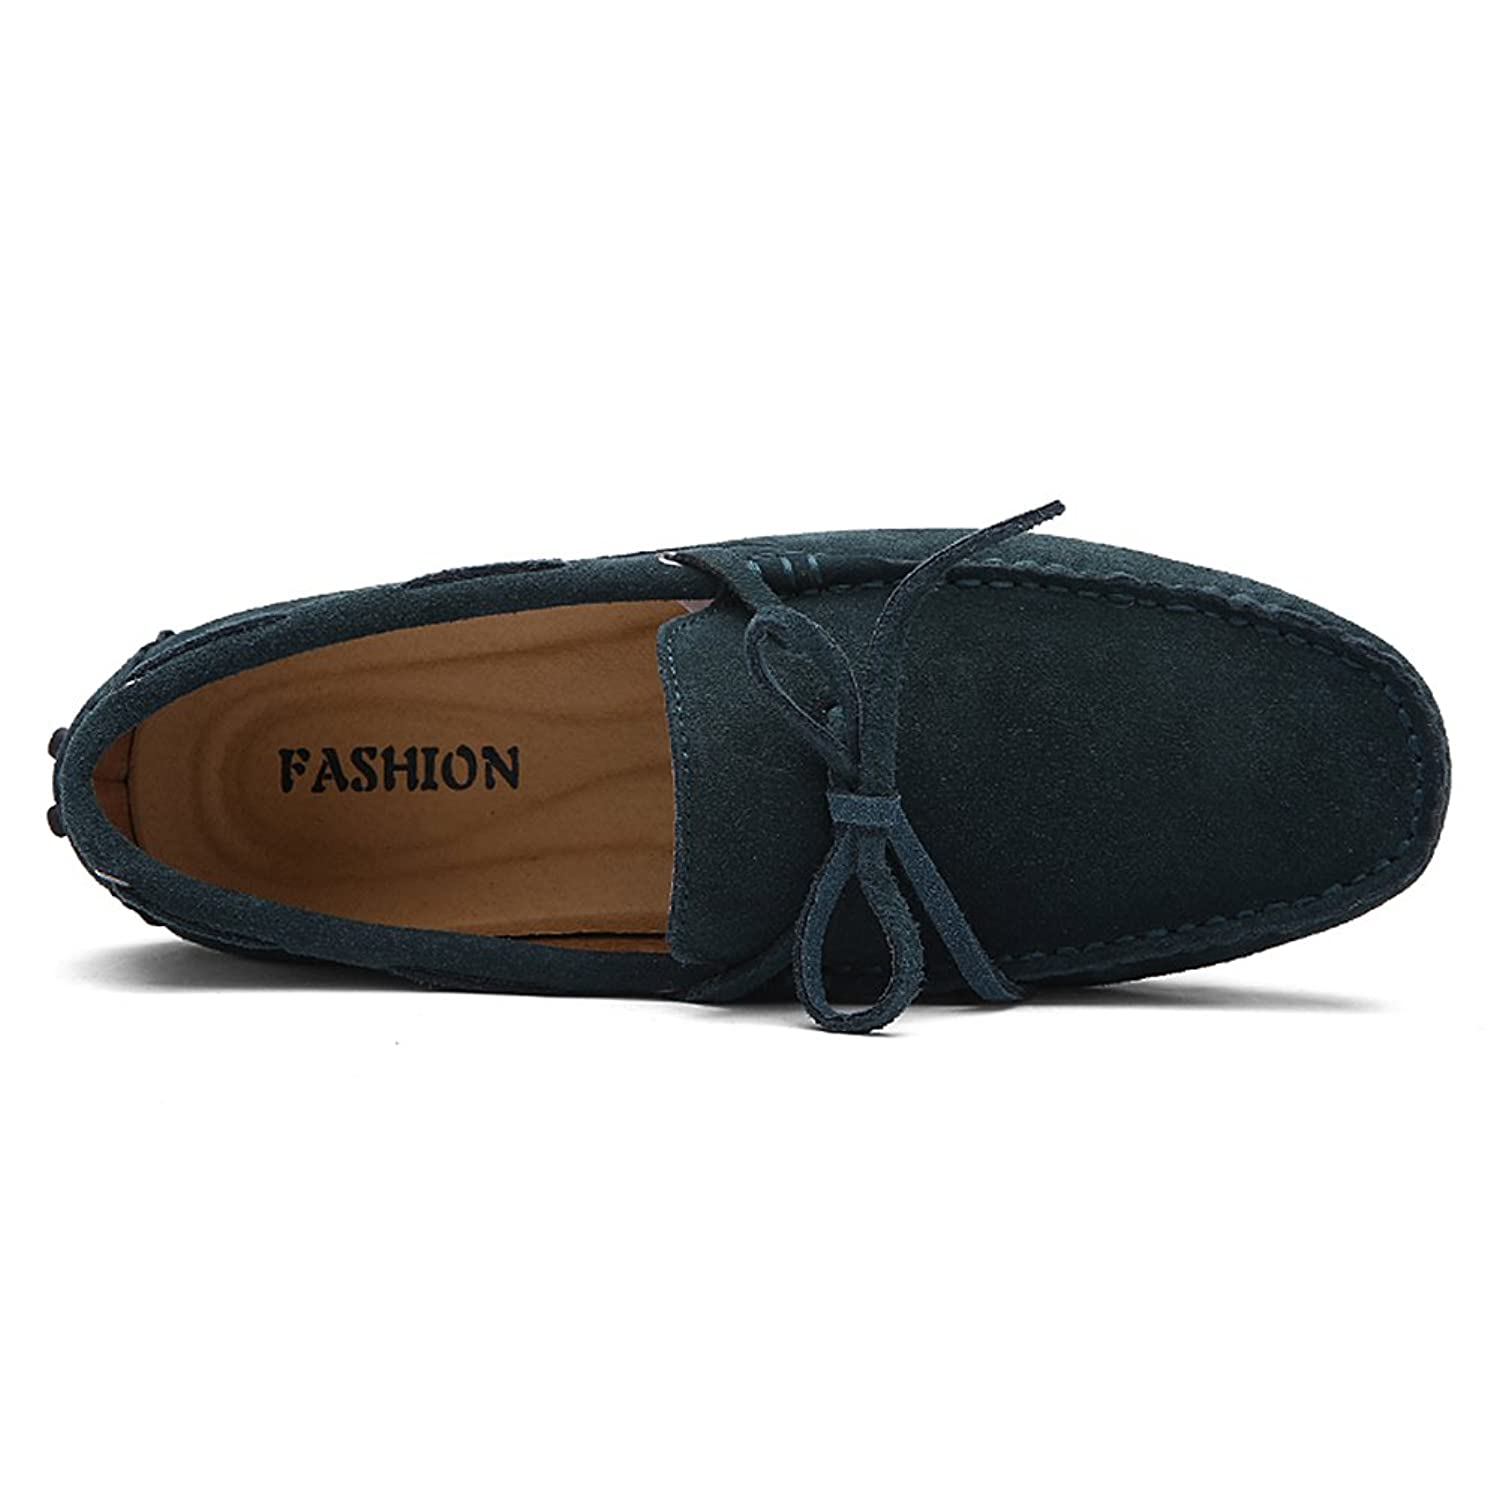 Jamron Men's Soft Suede Driving Loafers Shoes Handmade Moccasin Slippers  Big Size: Amazon.co.uk: Shoes & Bags